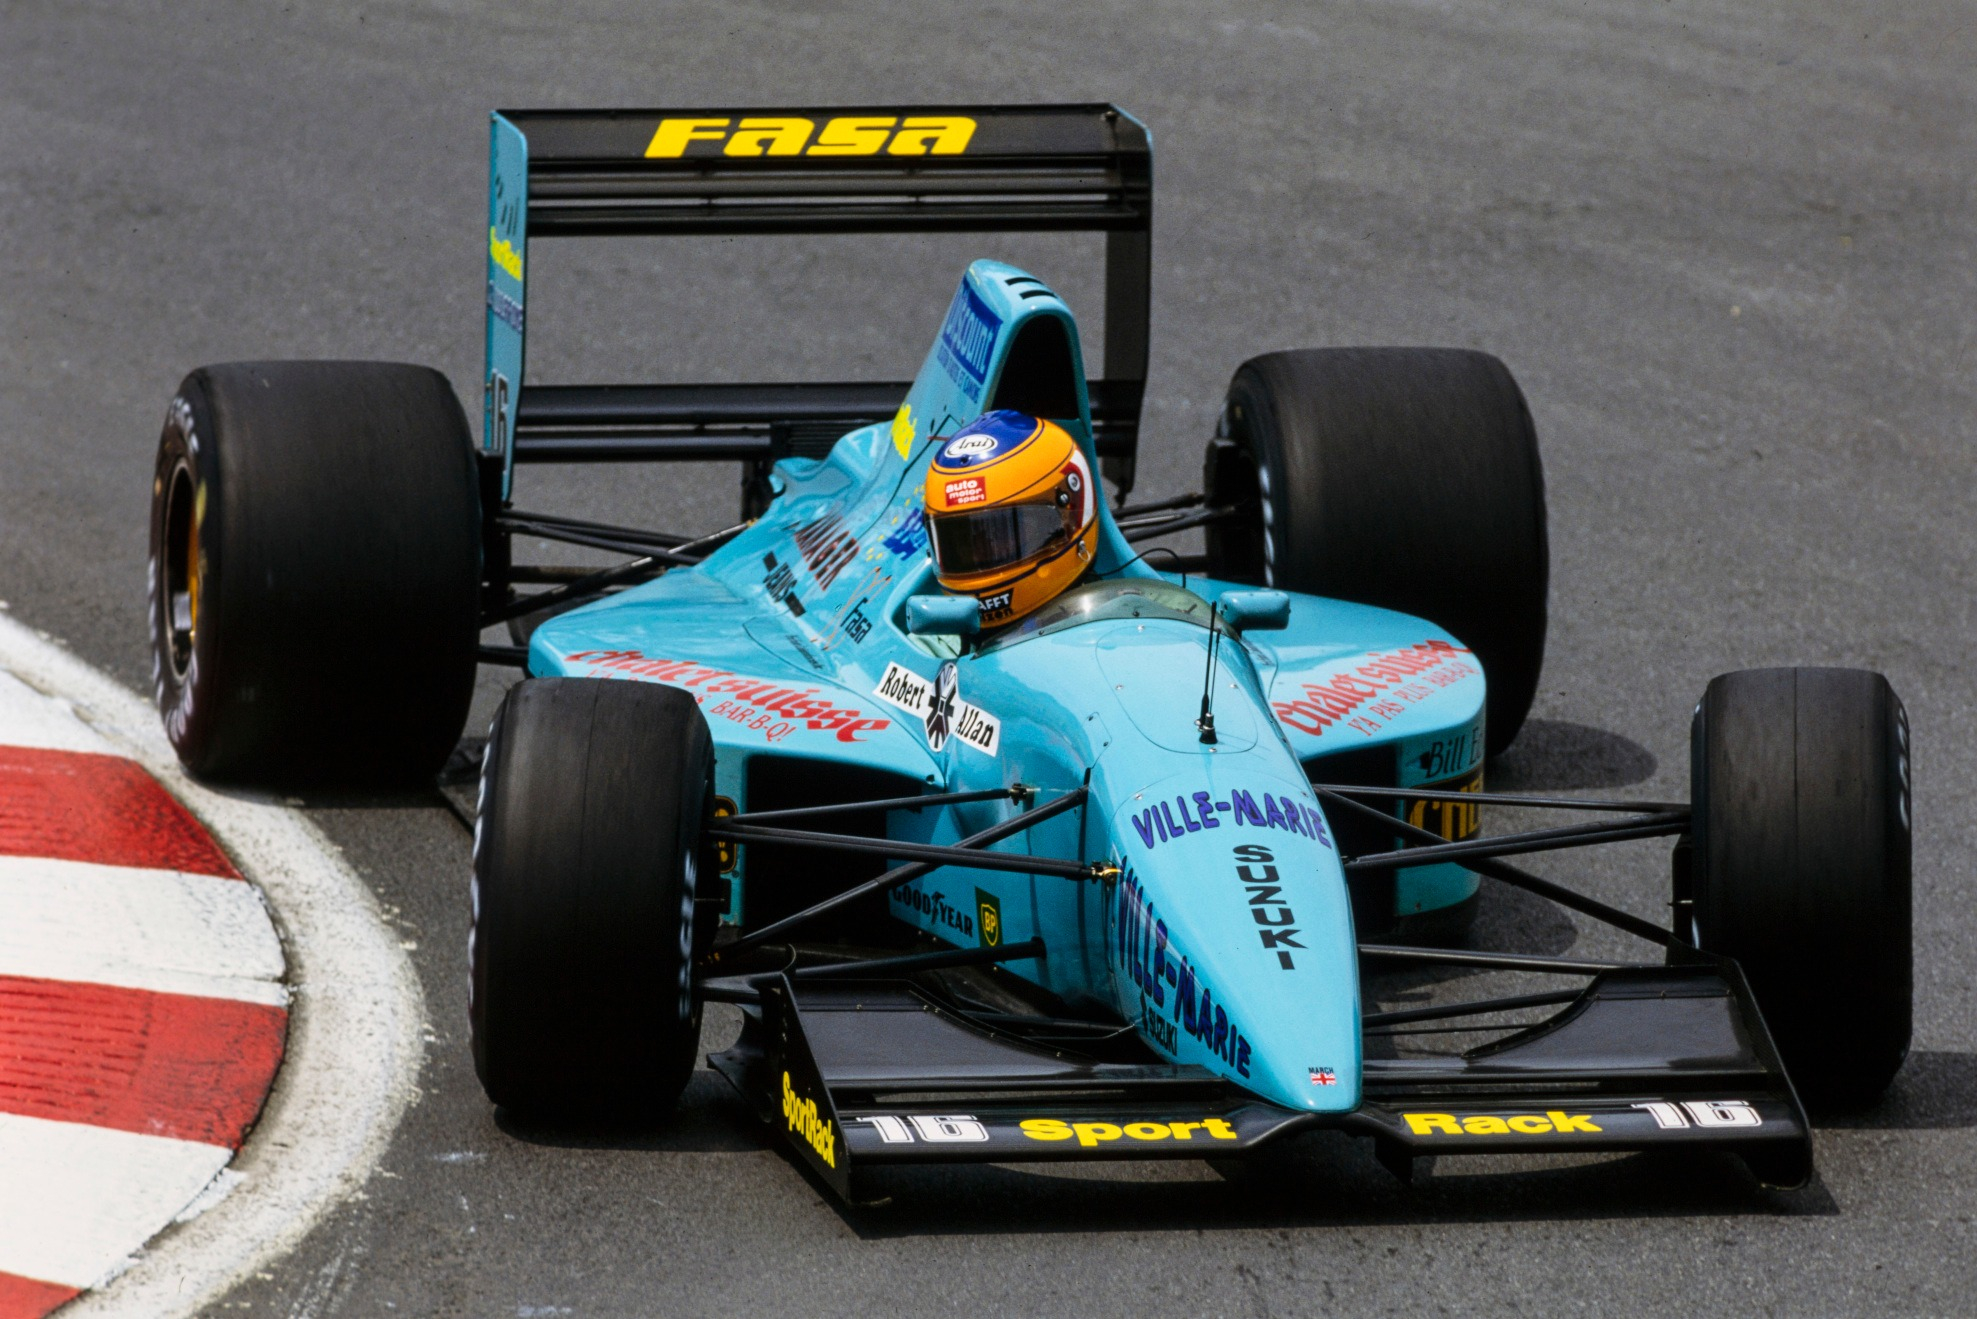 Wendlinger miraculously finished fourth in Montreal, but the team was running out of money - as the plethora of small stickers underlined